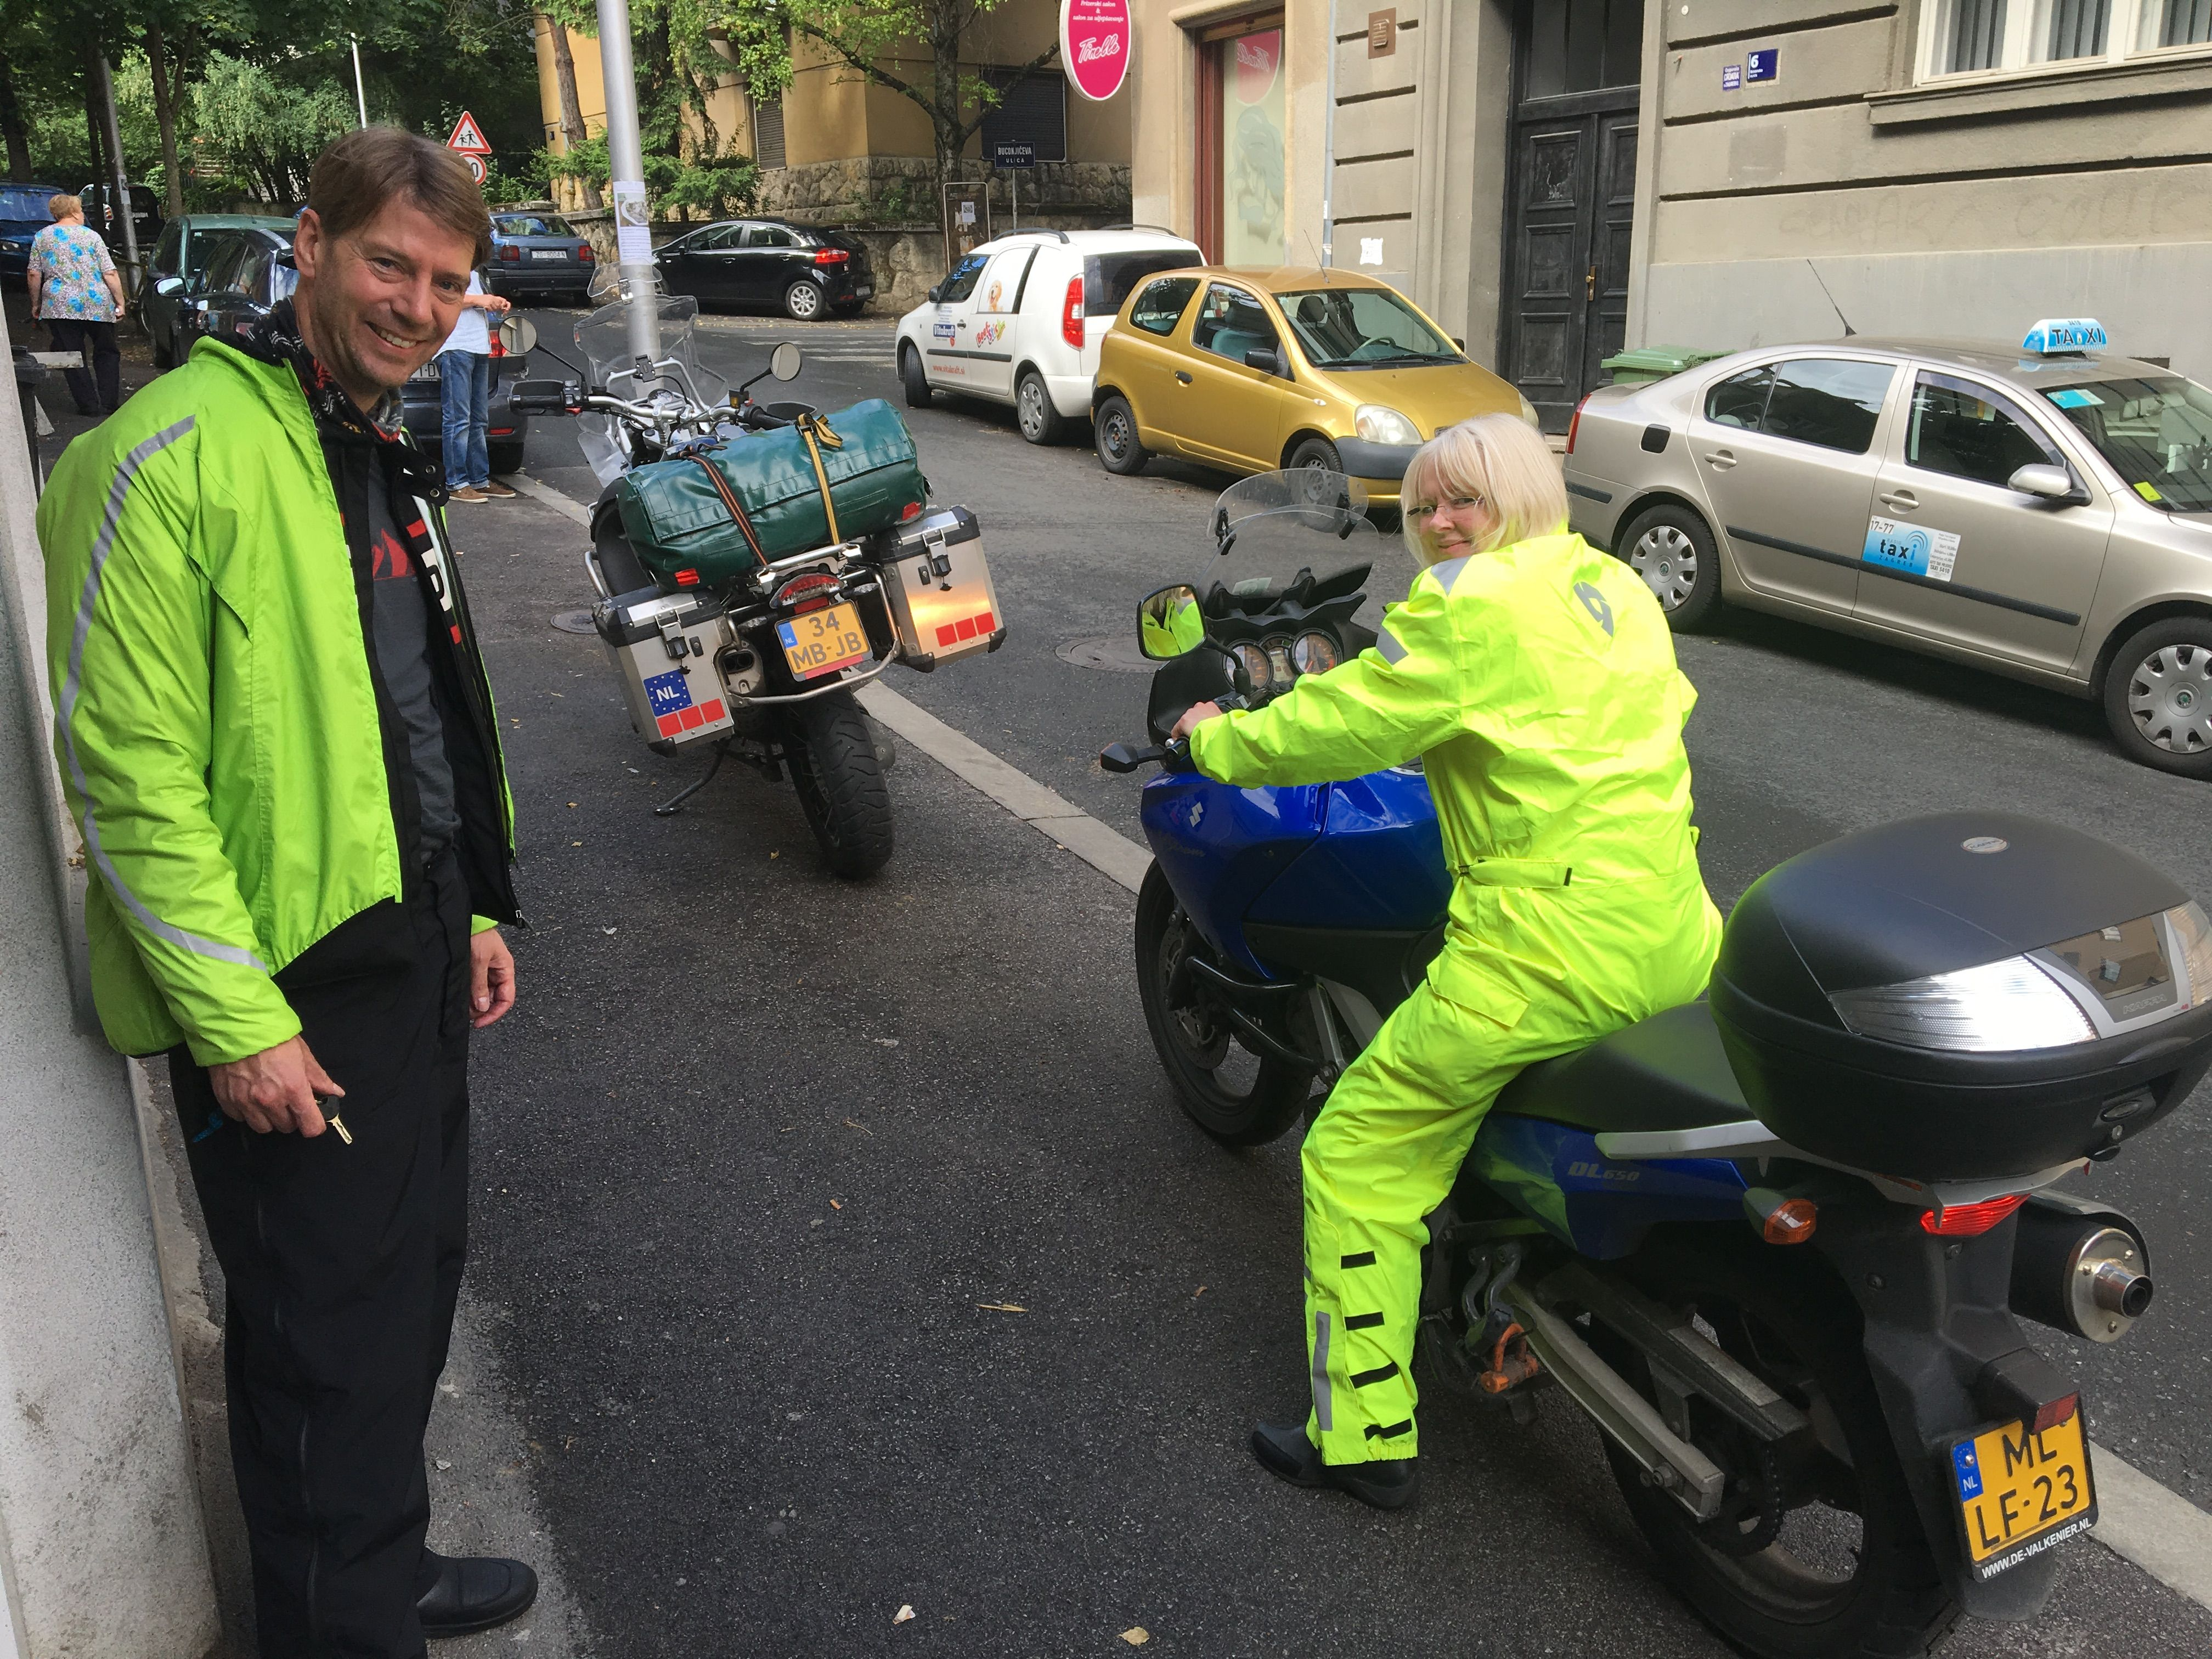 Pin By Lobagola Mototours On Testimonials Green Cards Motorcycle Travel New Motorcycles